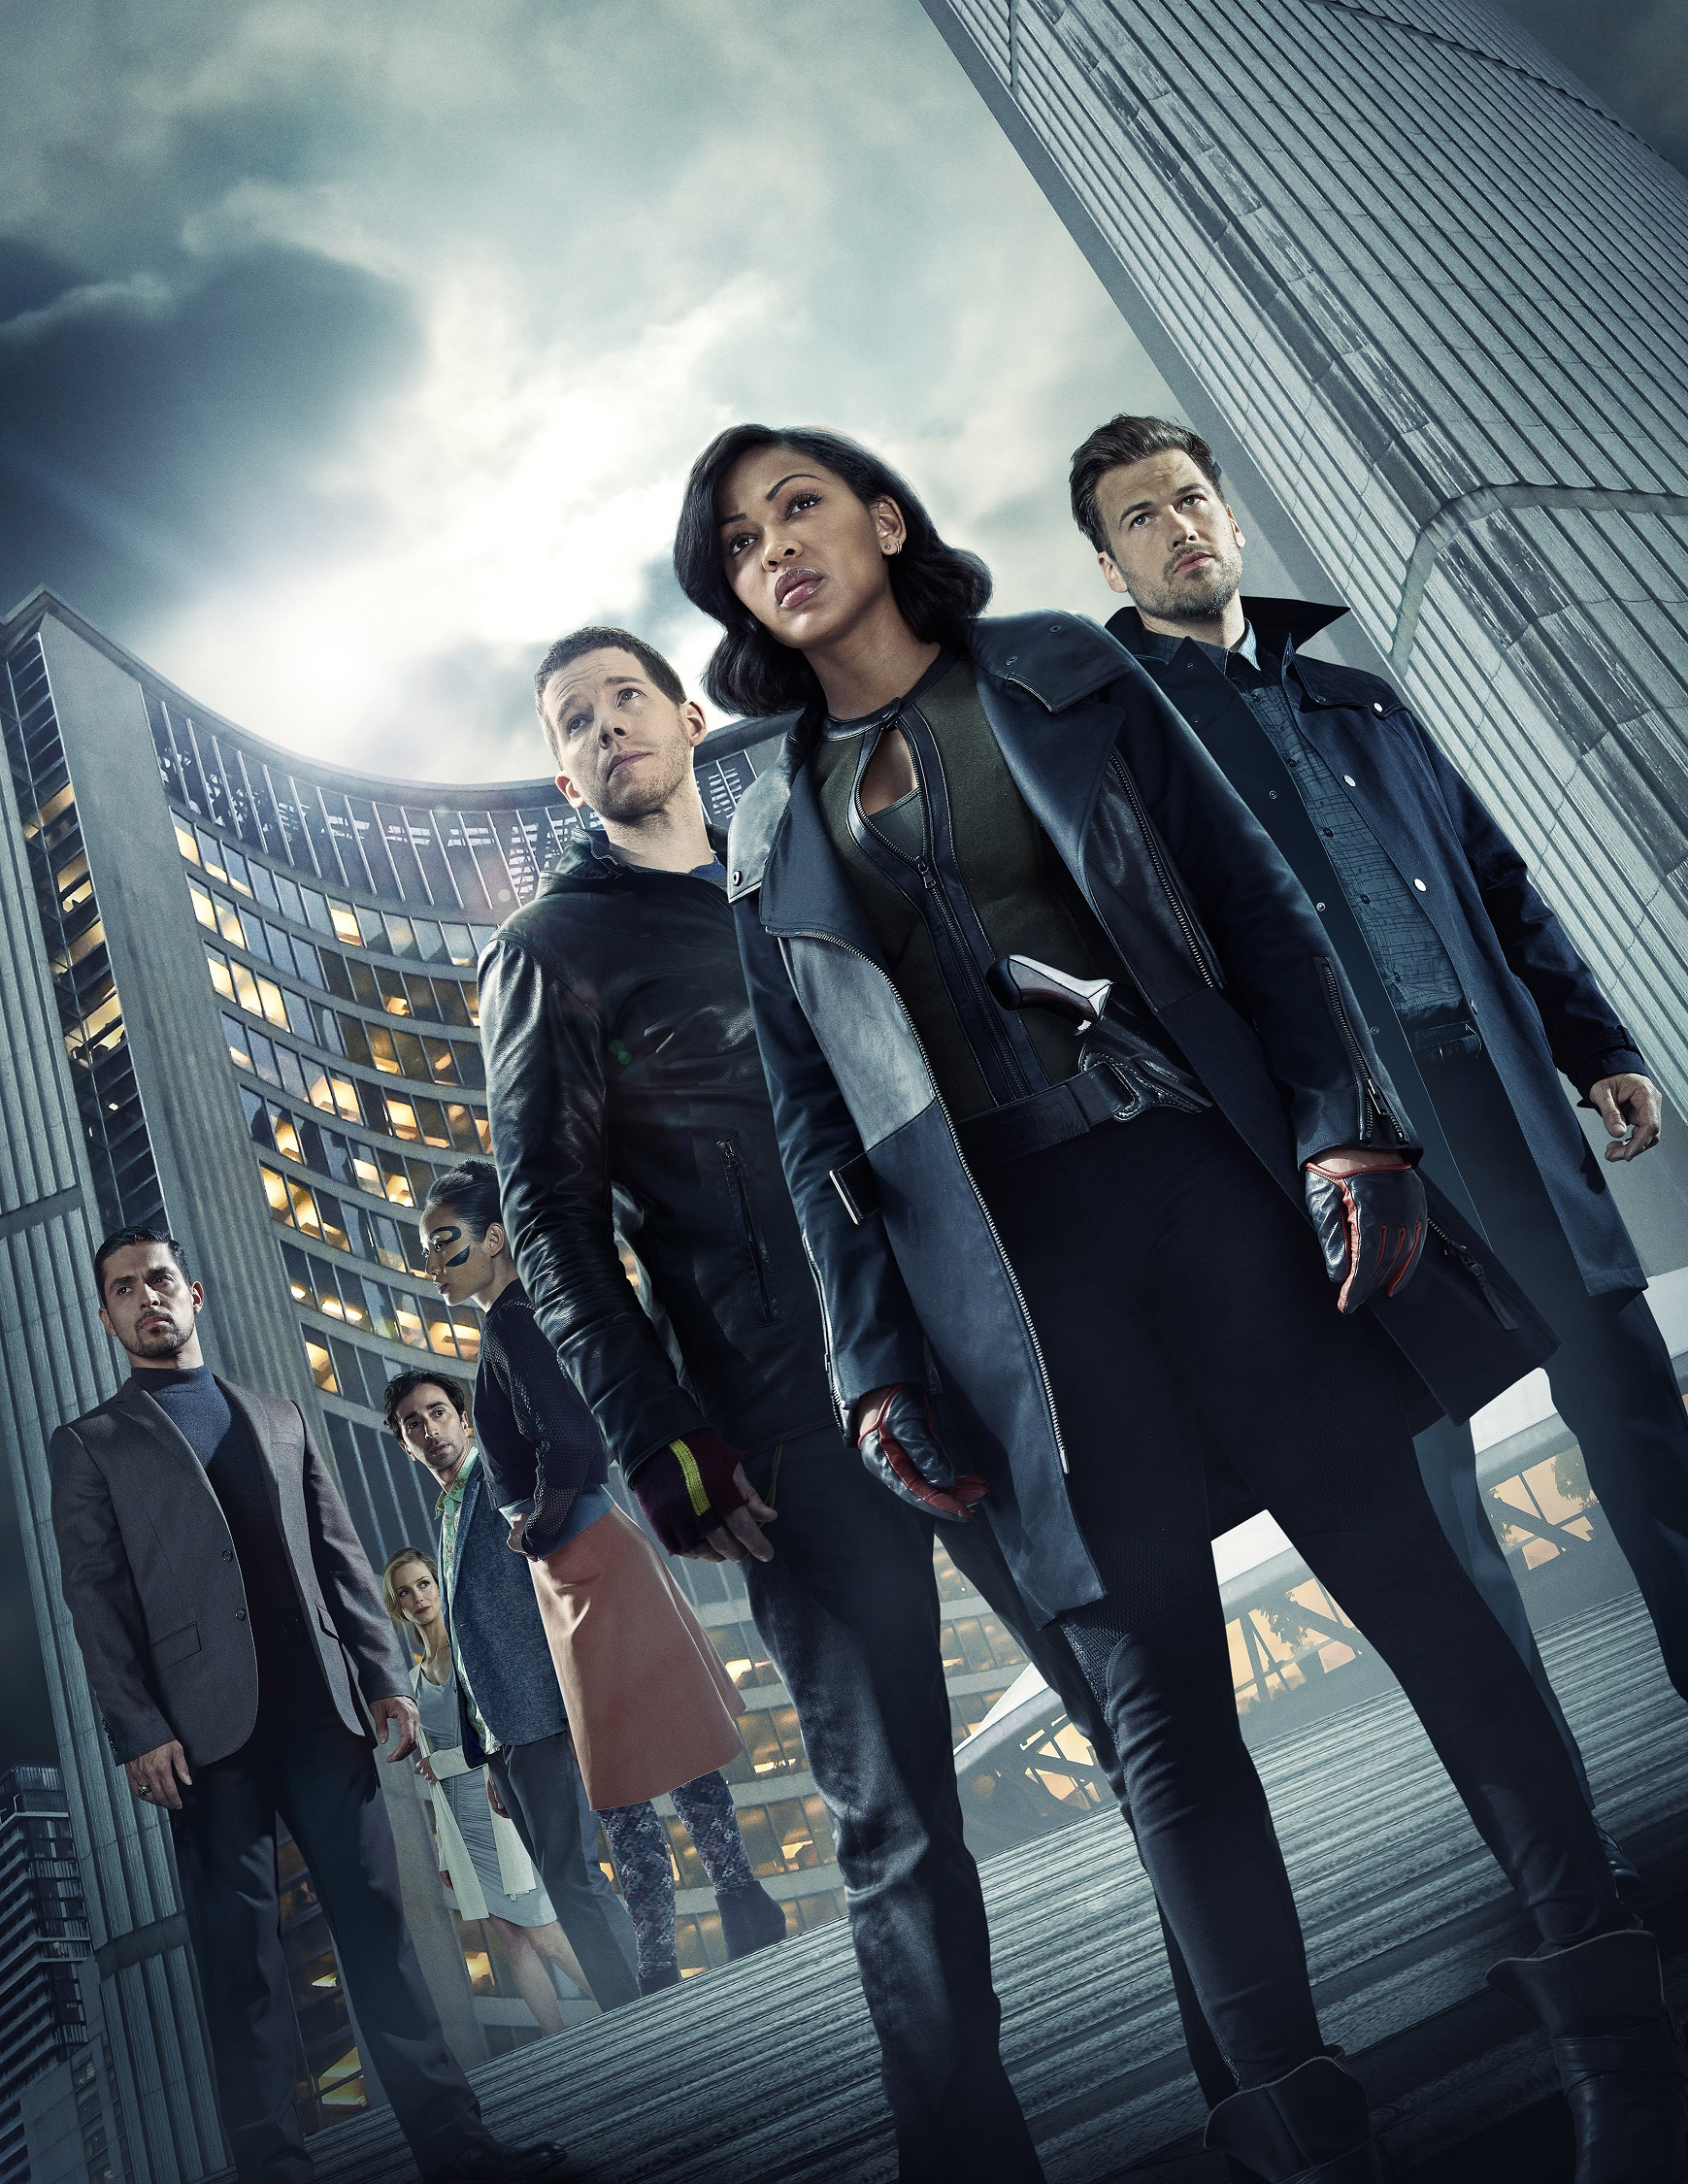 FOX-CineFOX-Minority Report - A Série (1)